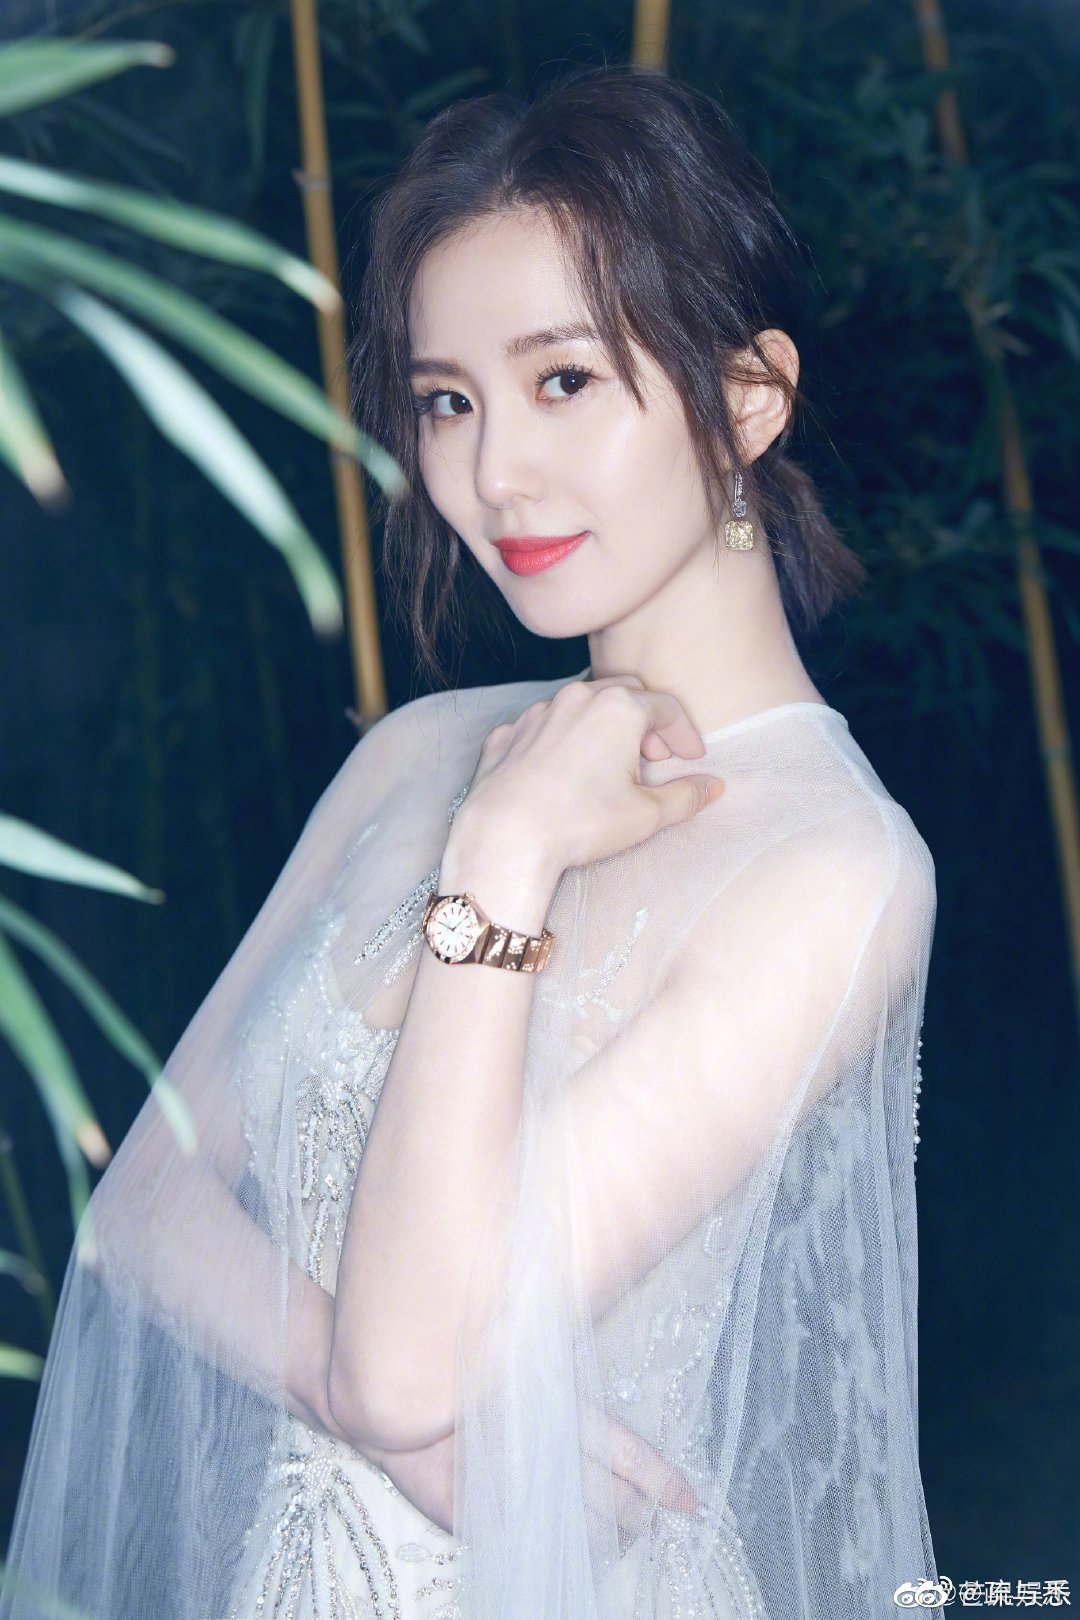 China's First Hound - Zhuo Wei revealed the list of the most 'clean' female artists Cbiz 2